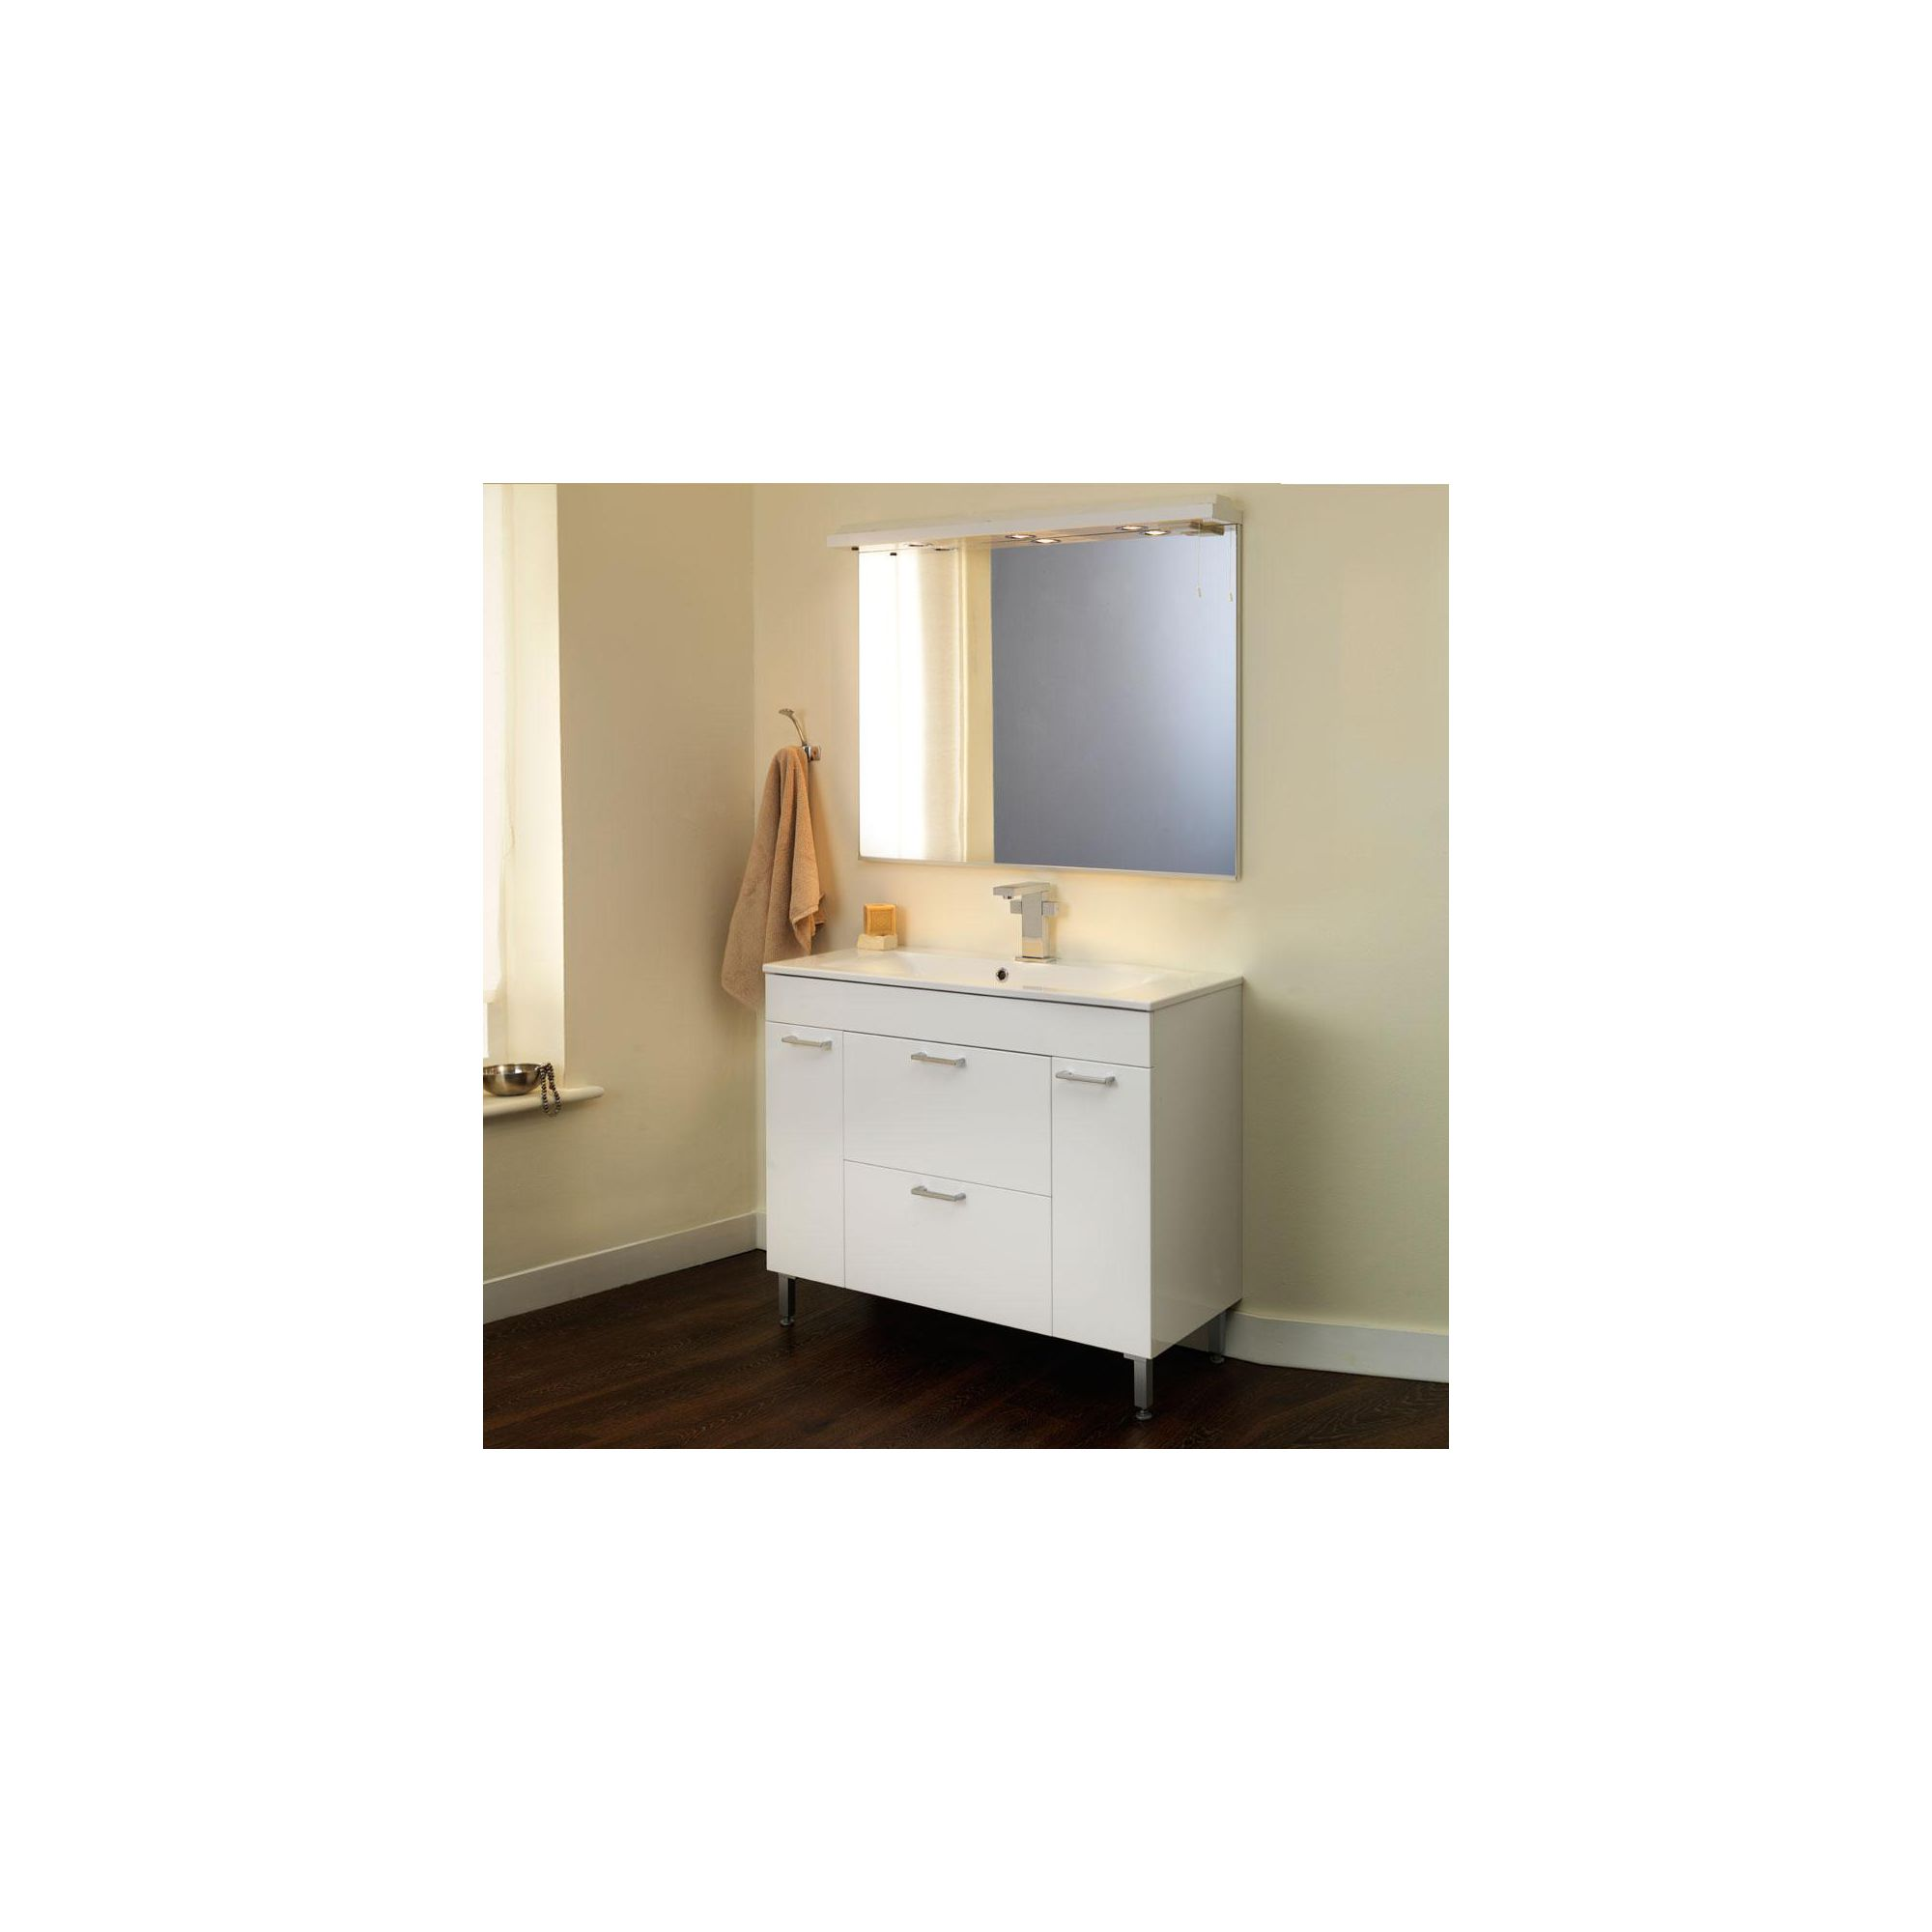 Duchy Trerise White Floor Standing 2 Door 2 Drawer Vanity Unit and Double Bowl Basin - 1000mm Wide x 445mm Deep including Mirror and Cornice